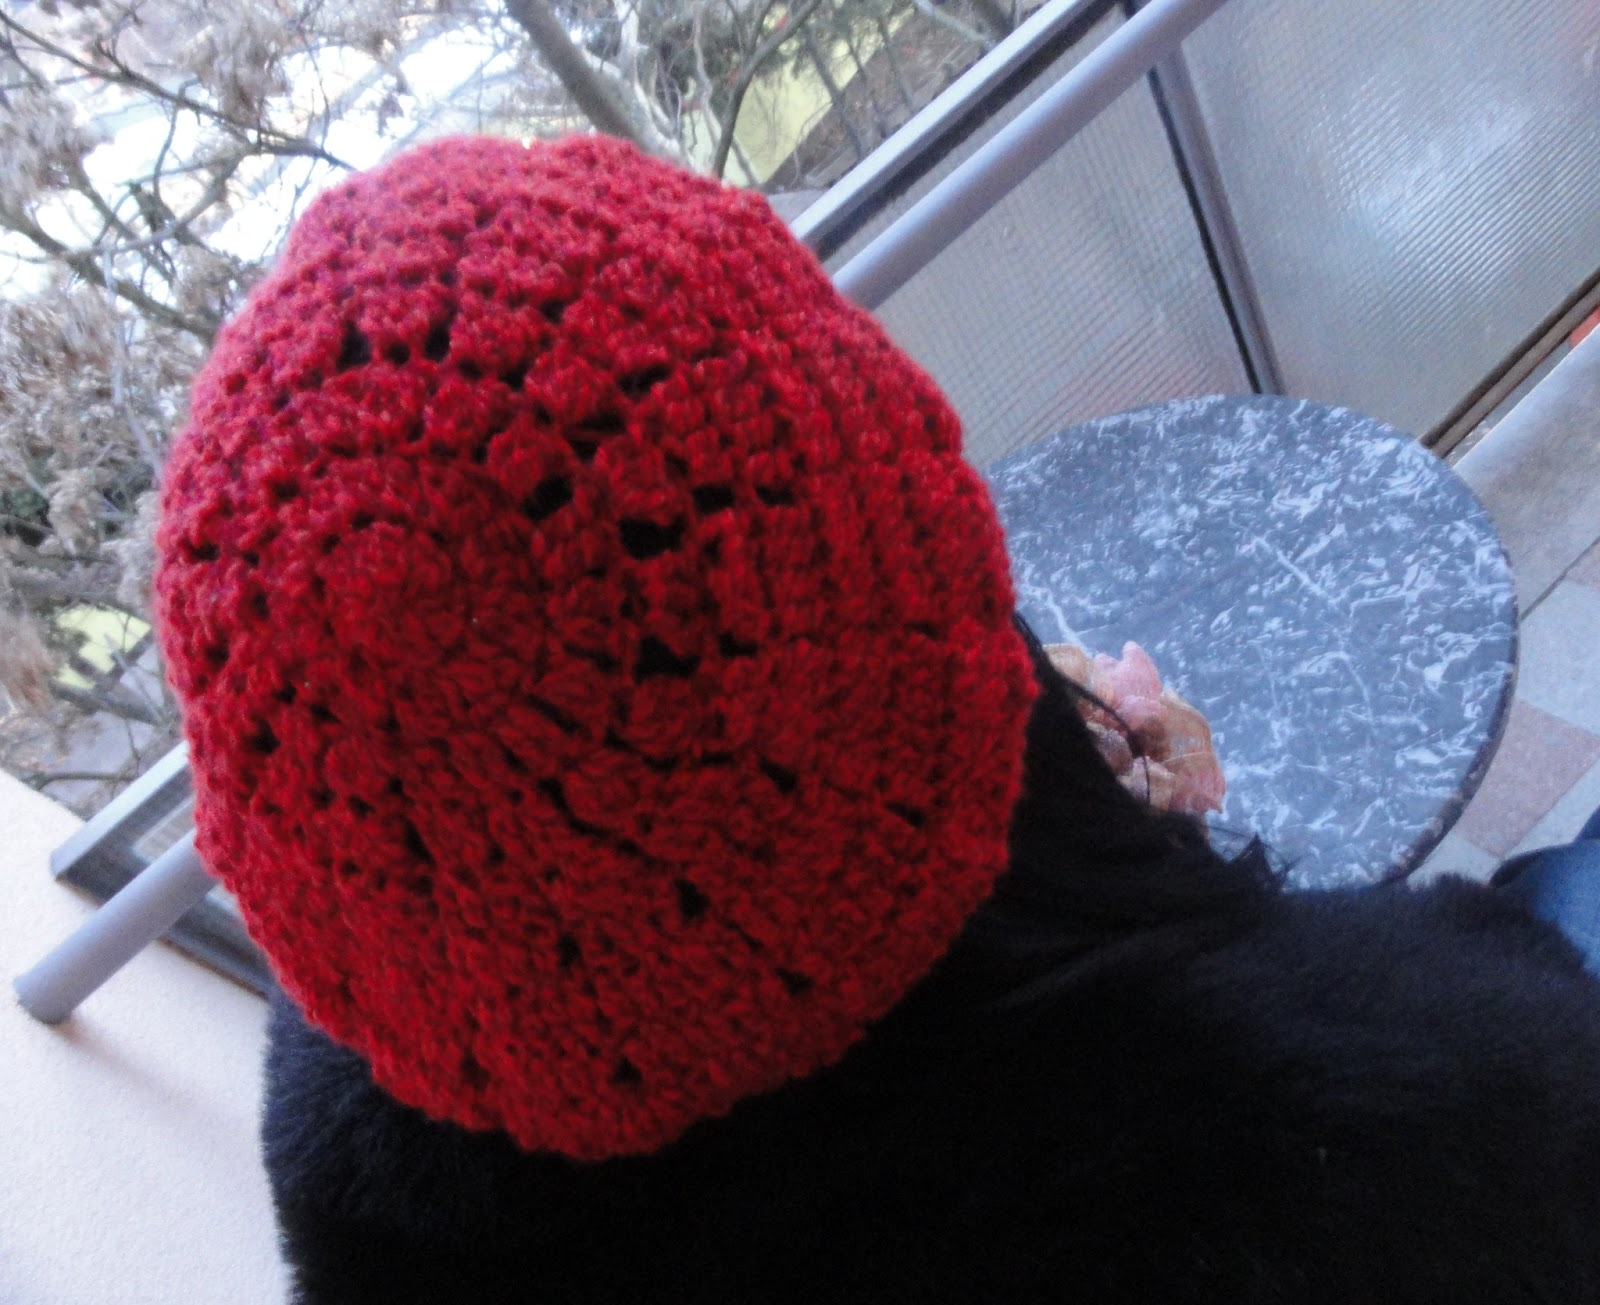 Beret Knitting Pattern Easy : hannicraft: Simple beret crochet pattern